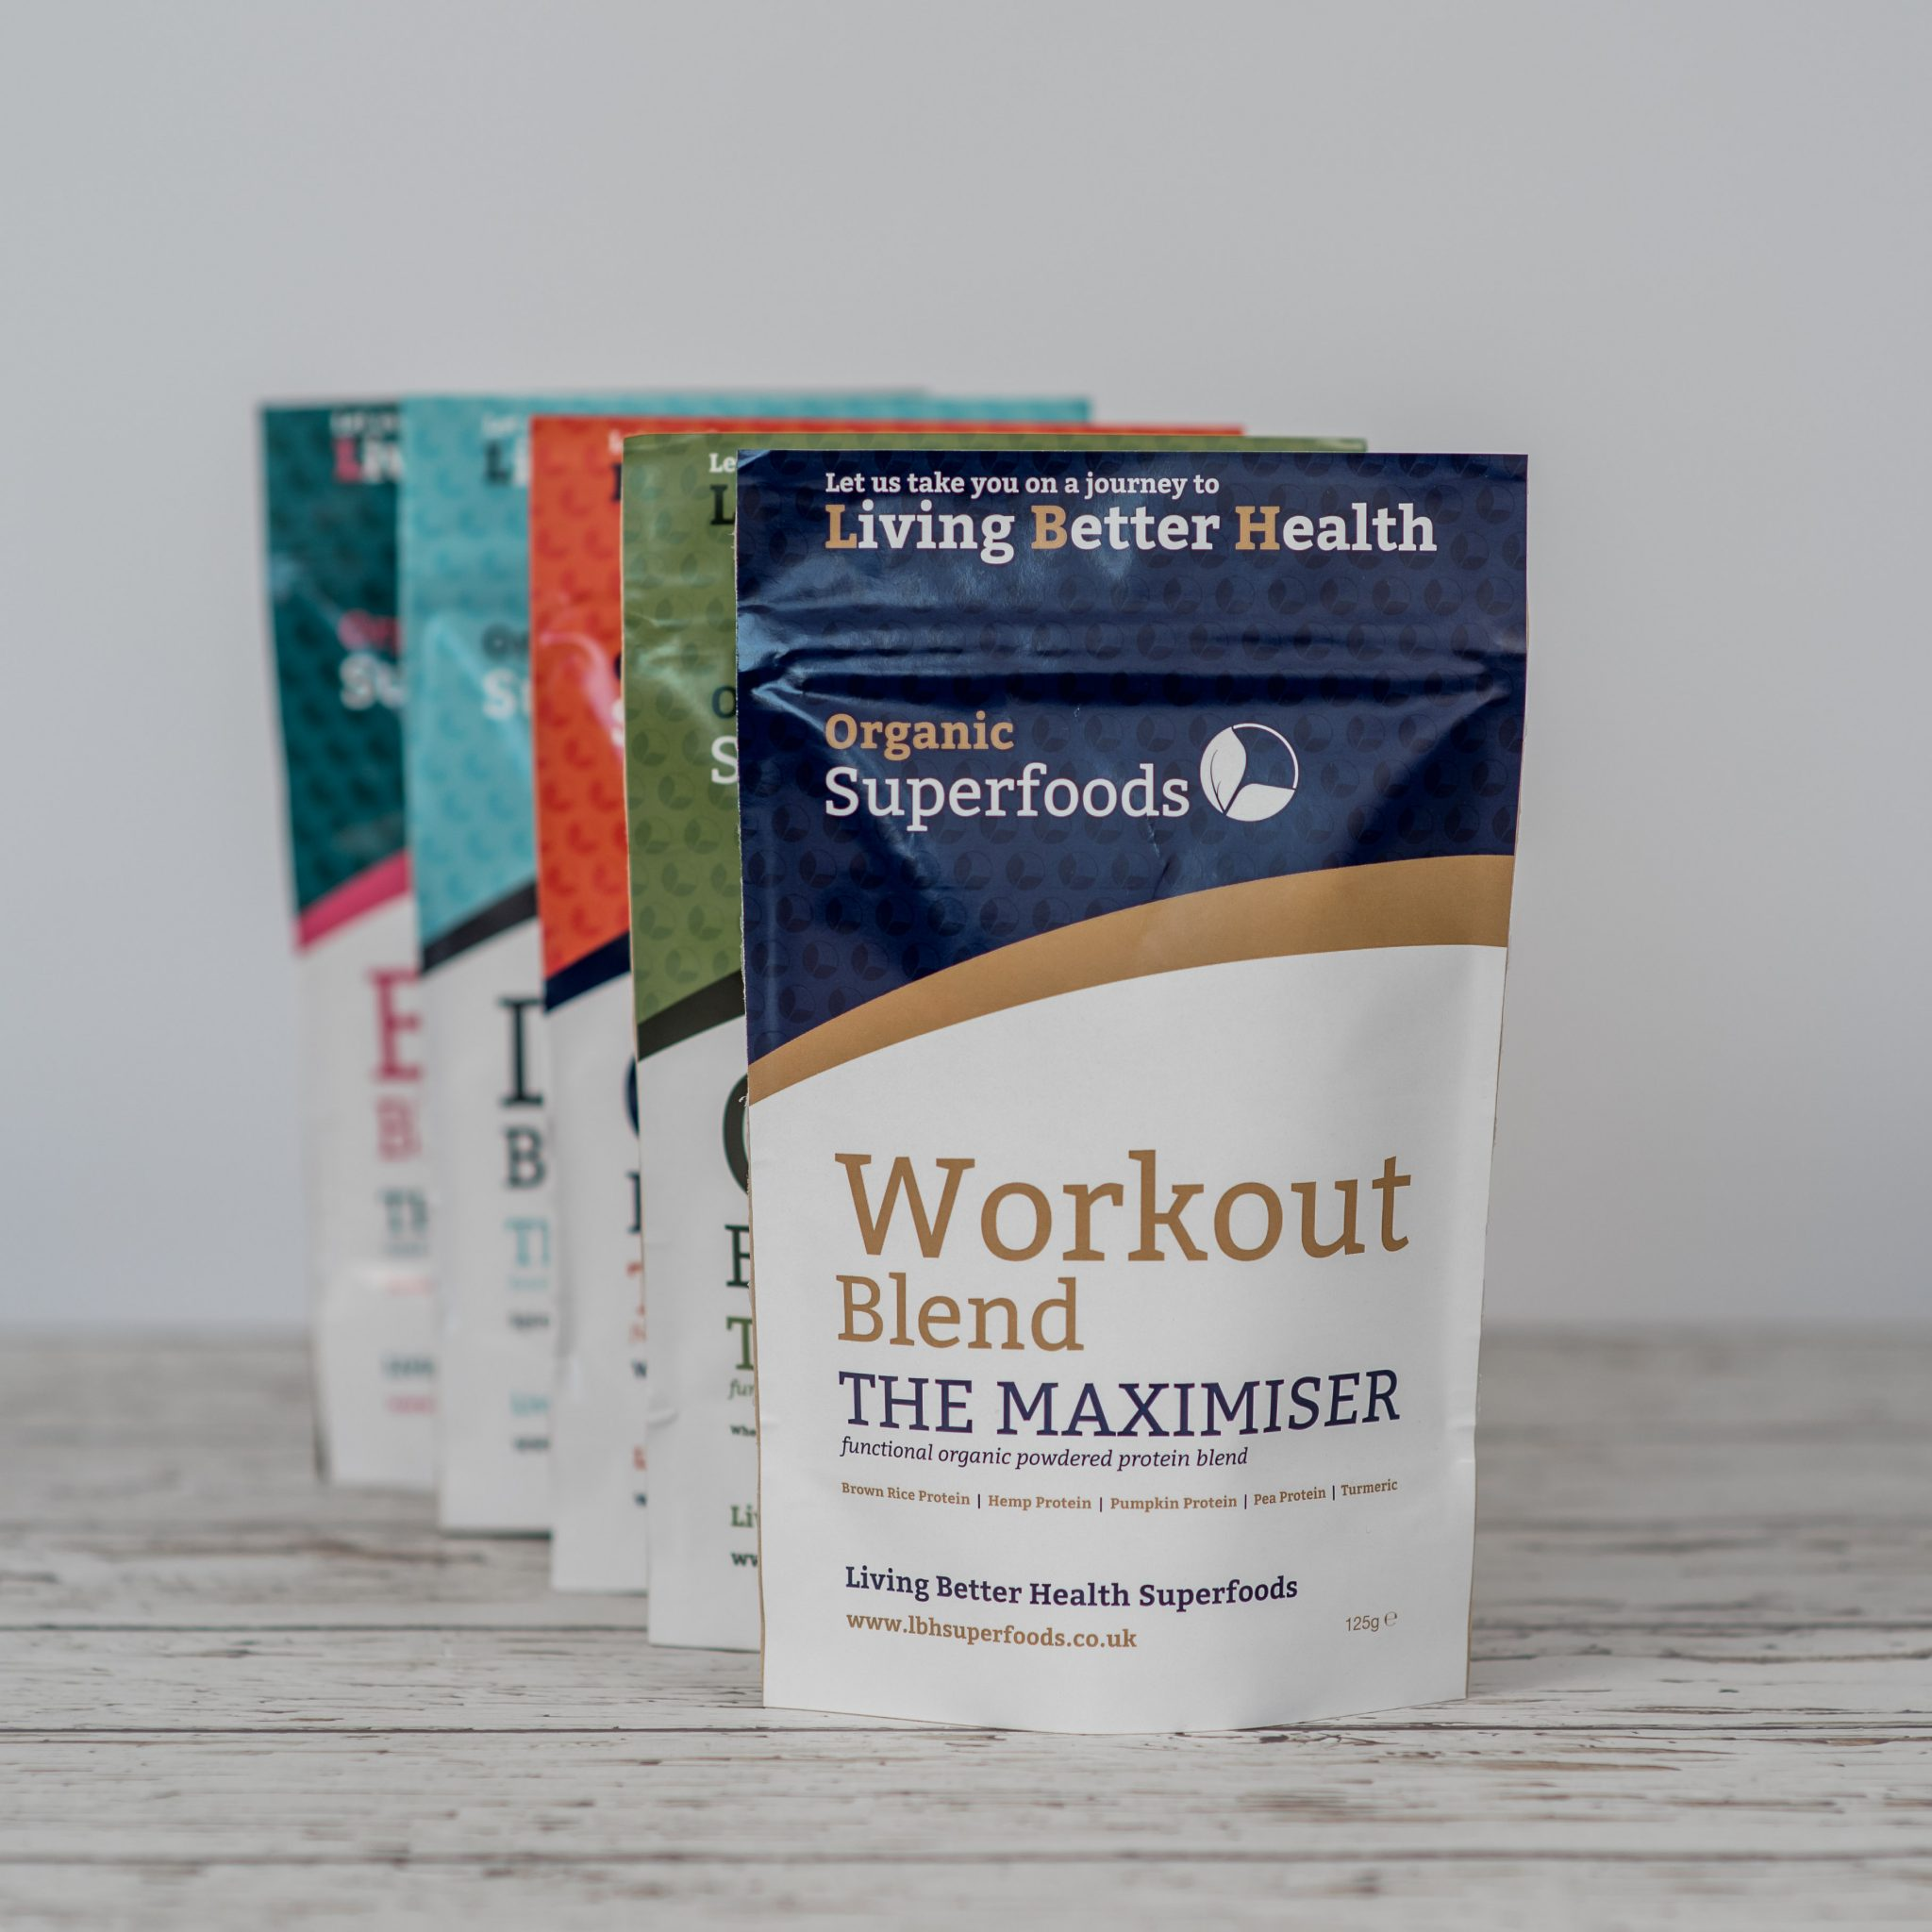 The Workout Blend